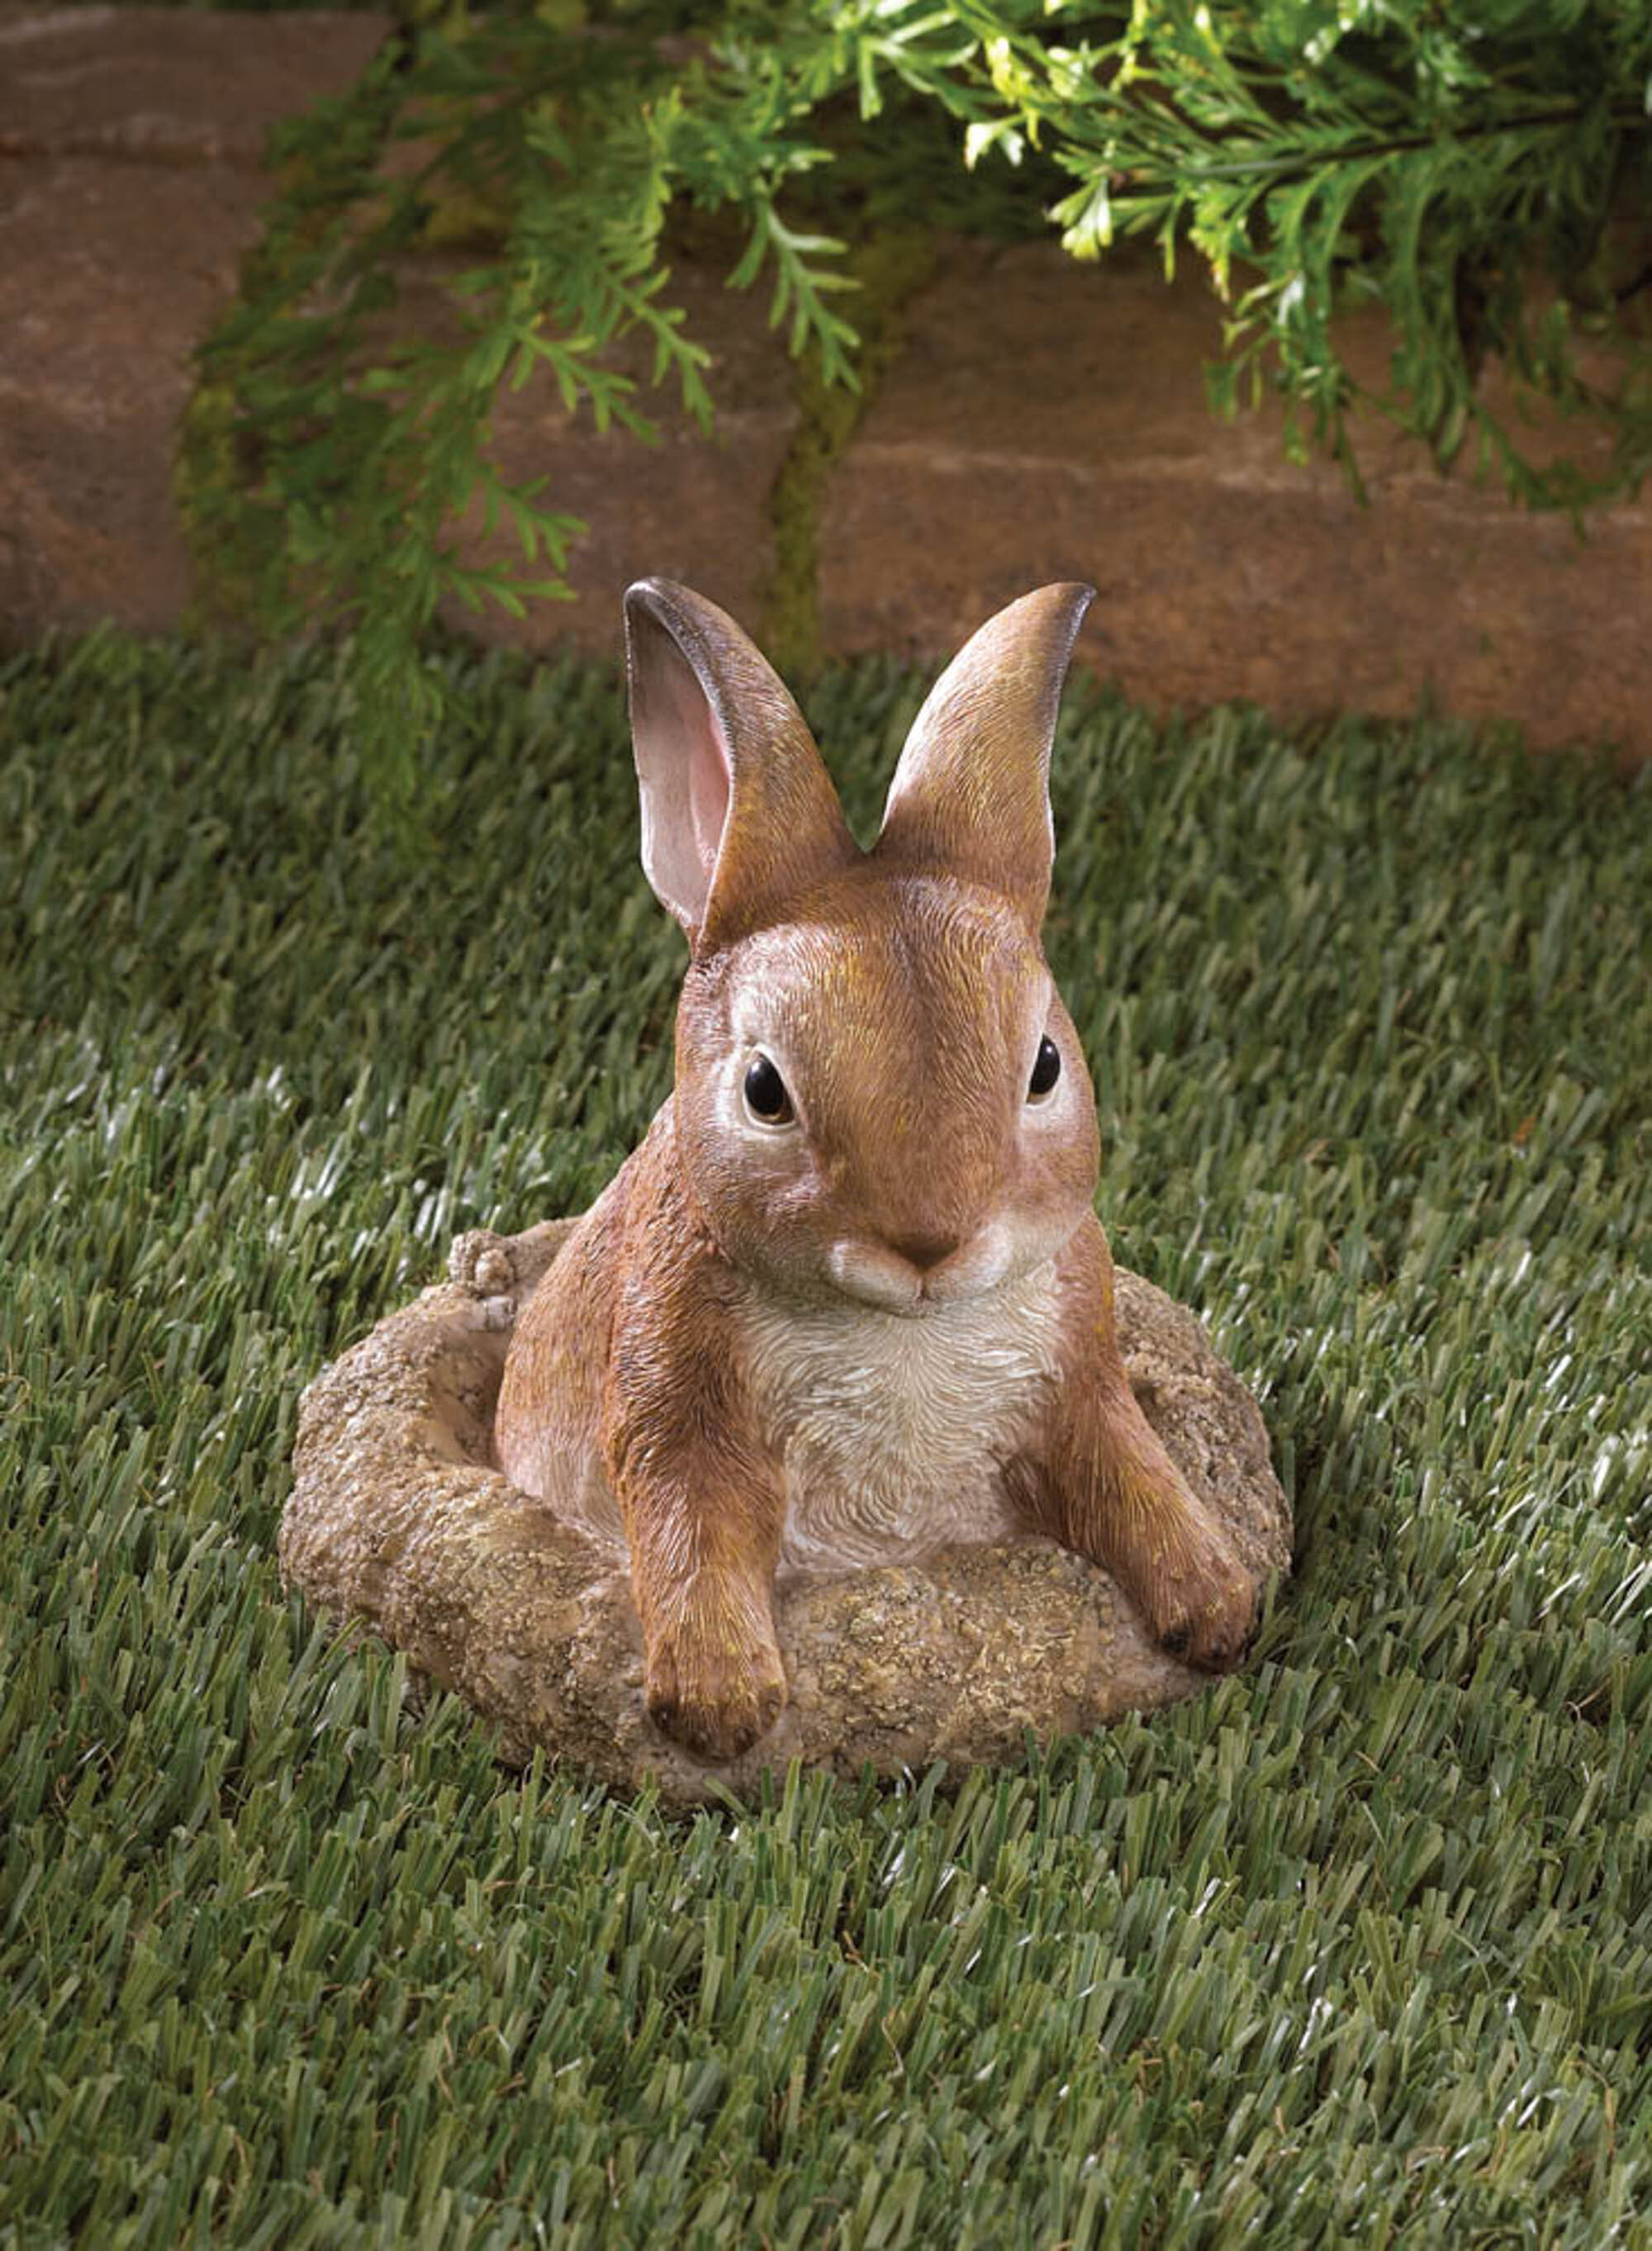 August Grove Jaylah Curious Bunny Garden Decor Statue Reviews Wayfair